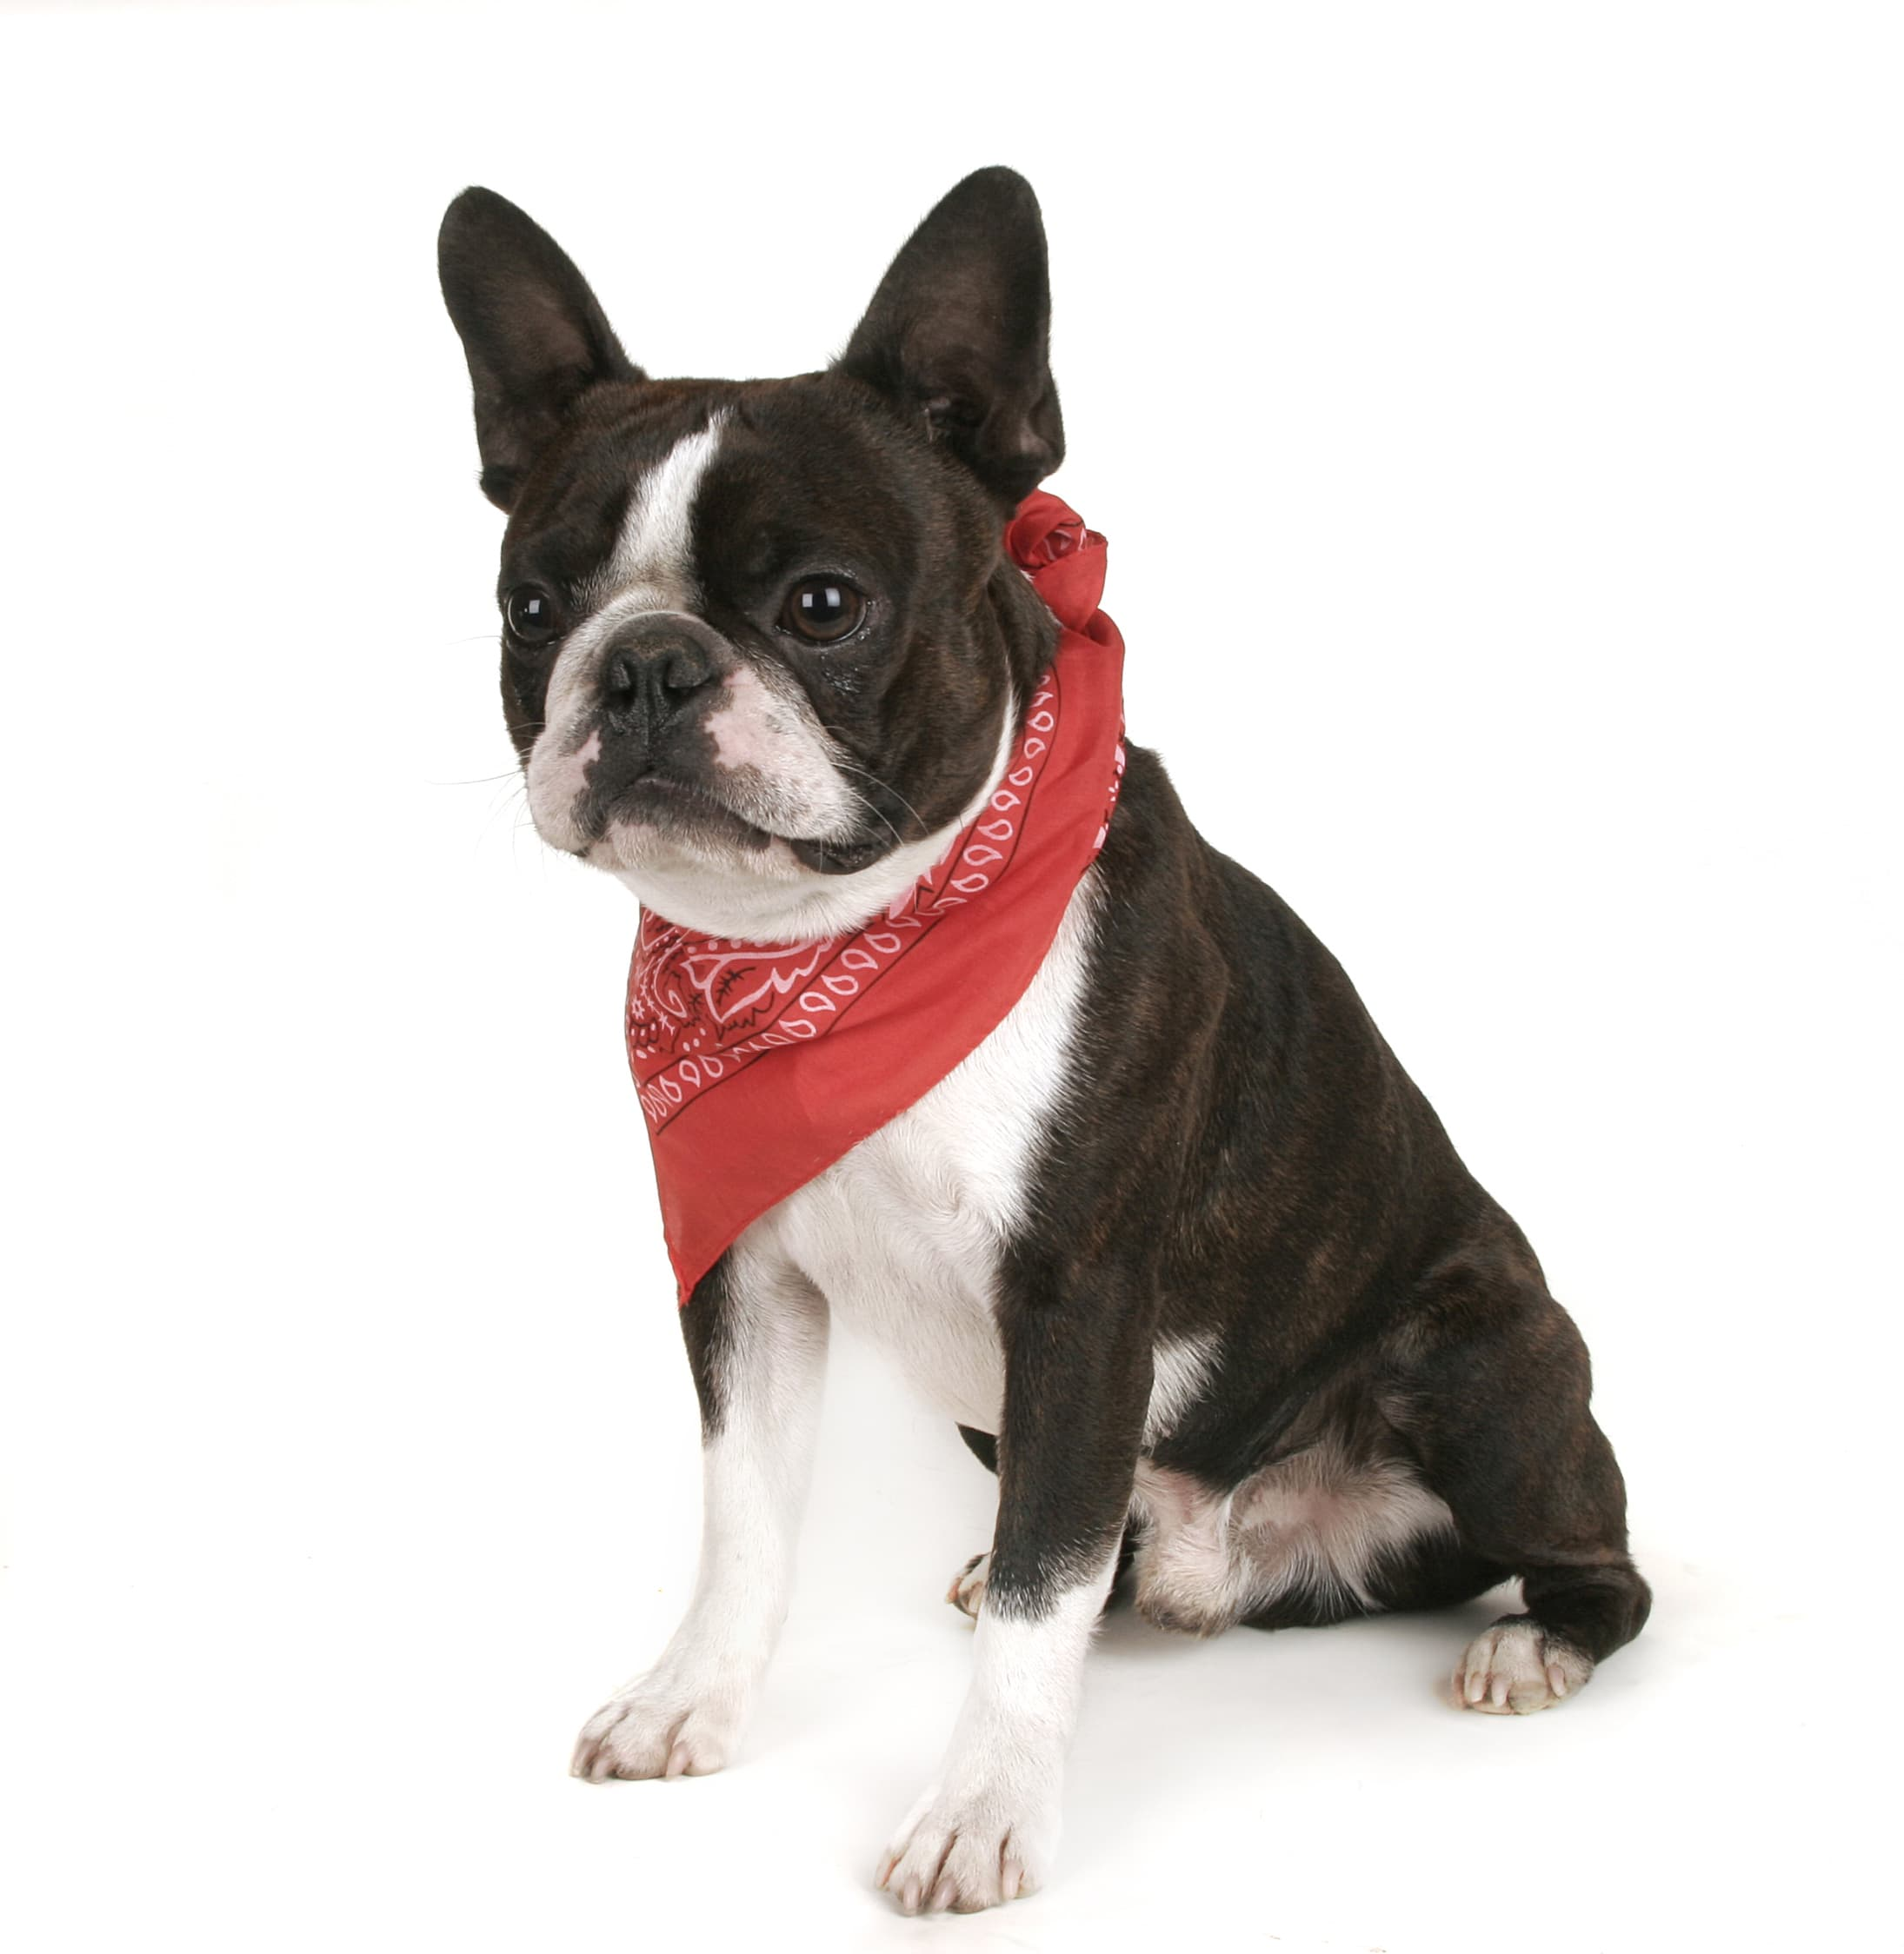 Adopting Boston Terrier